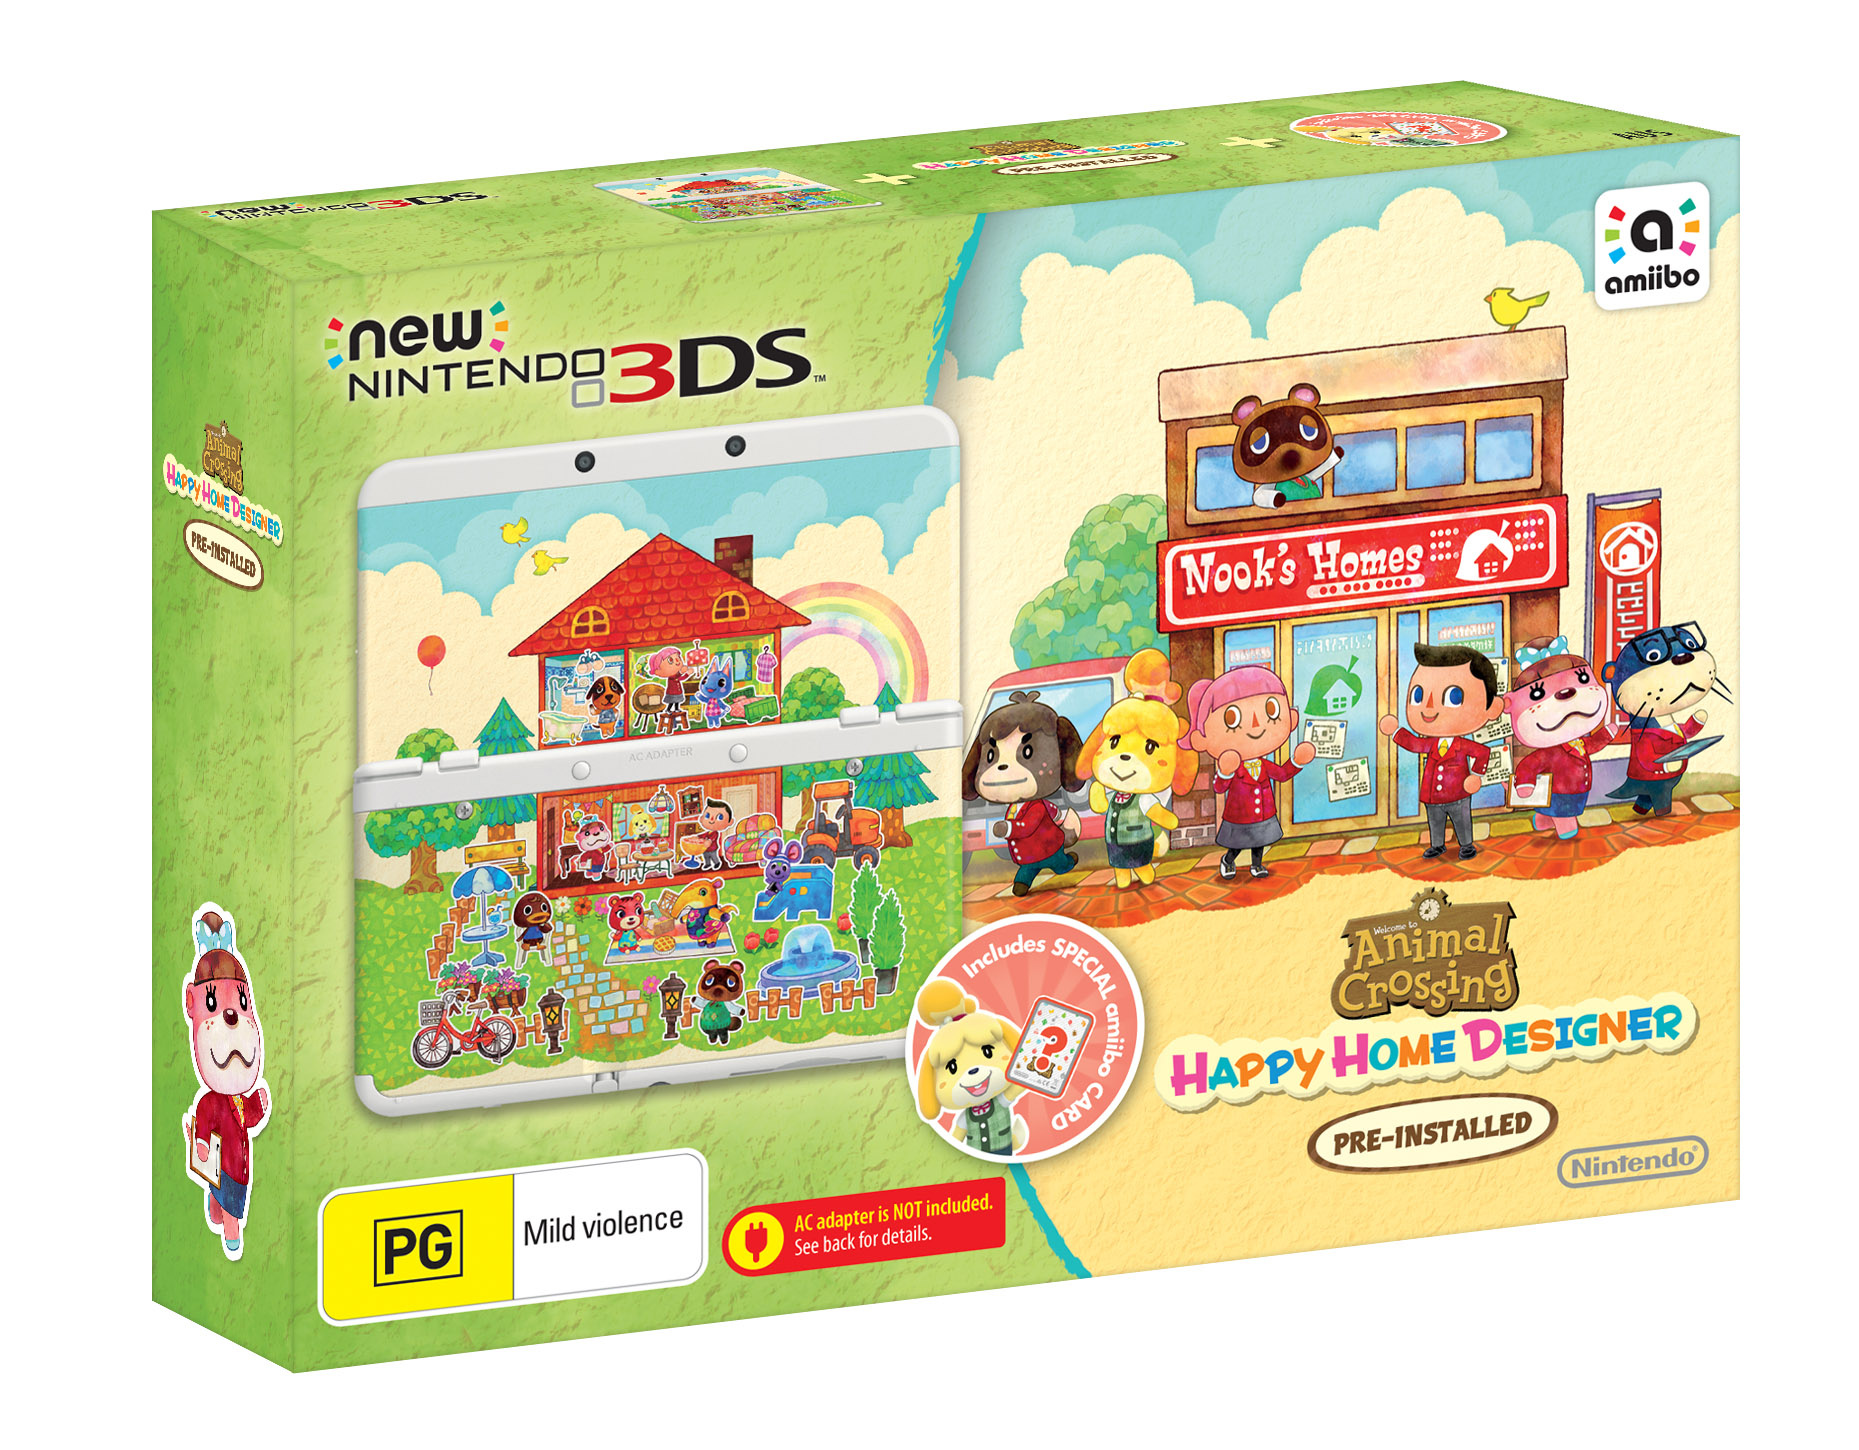 Black New Nintendo 3ds And Animal Crossing Happy Home Designer Bundle Confirmed For Australia